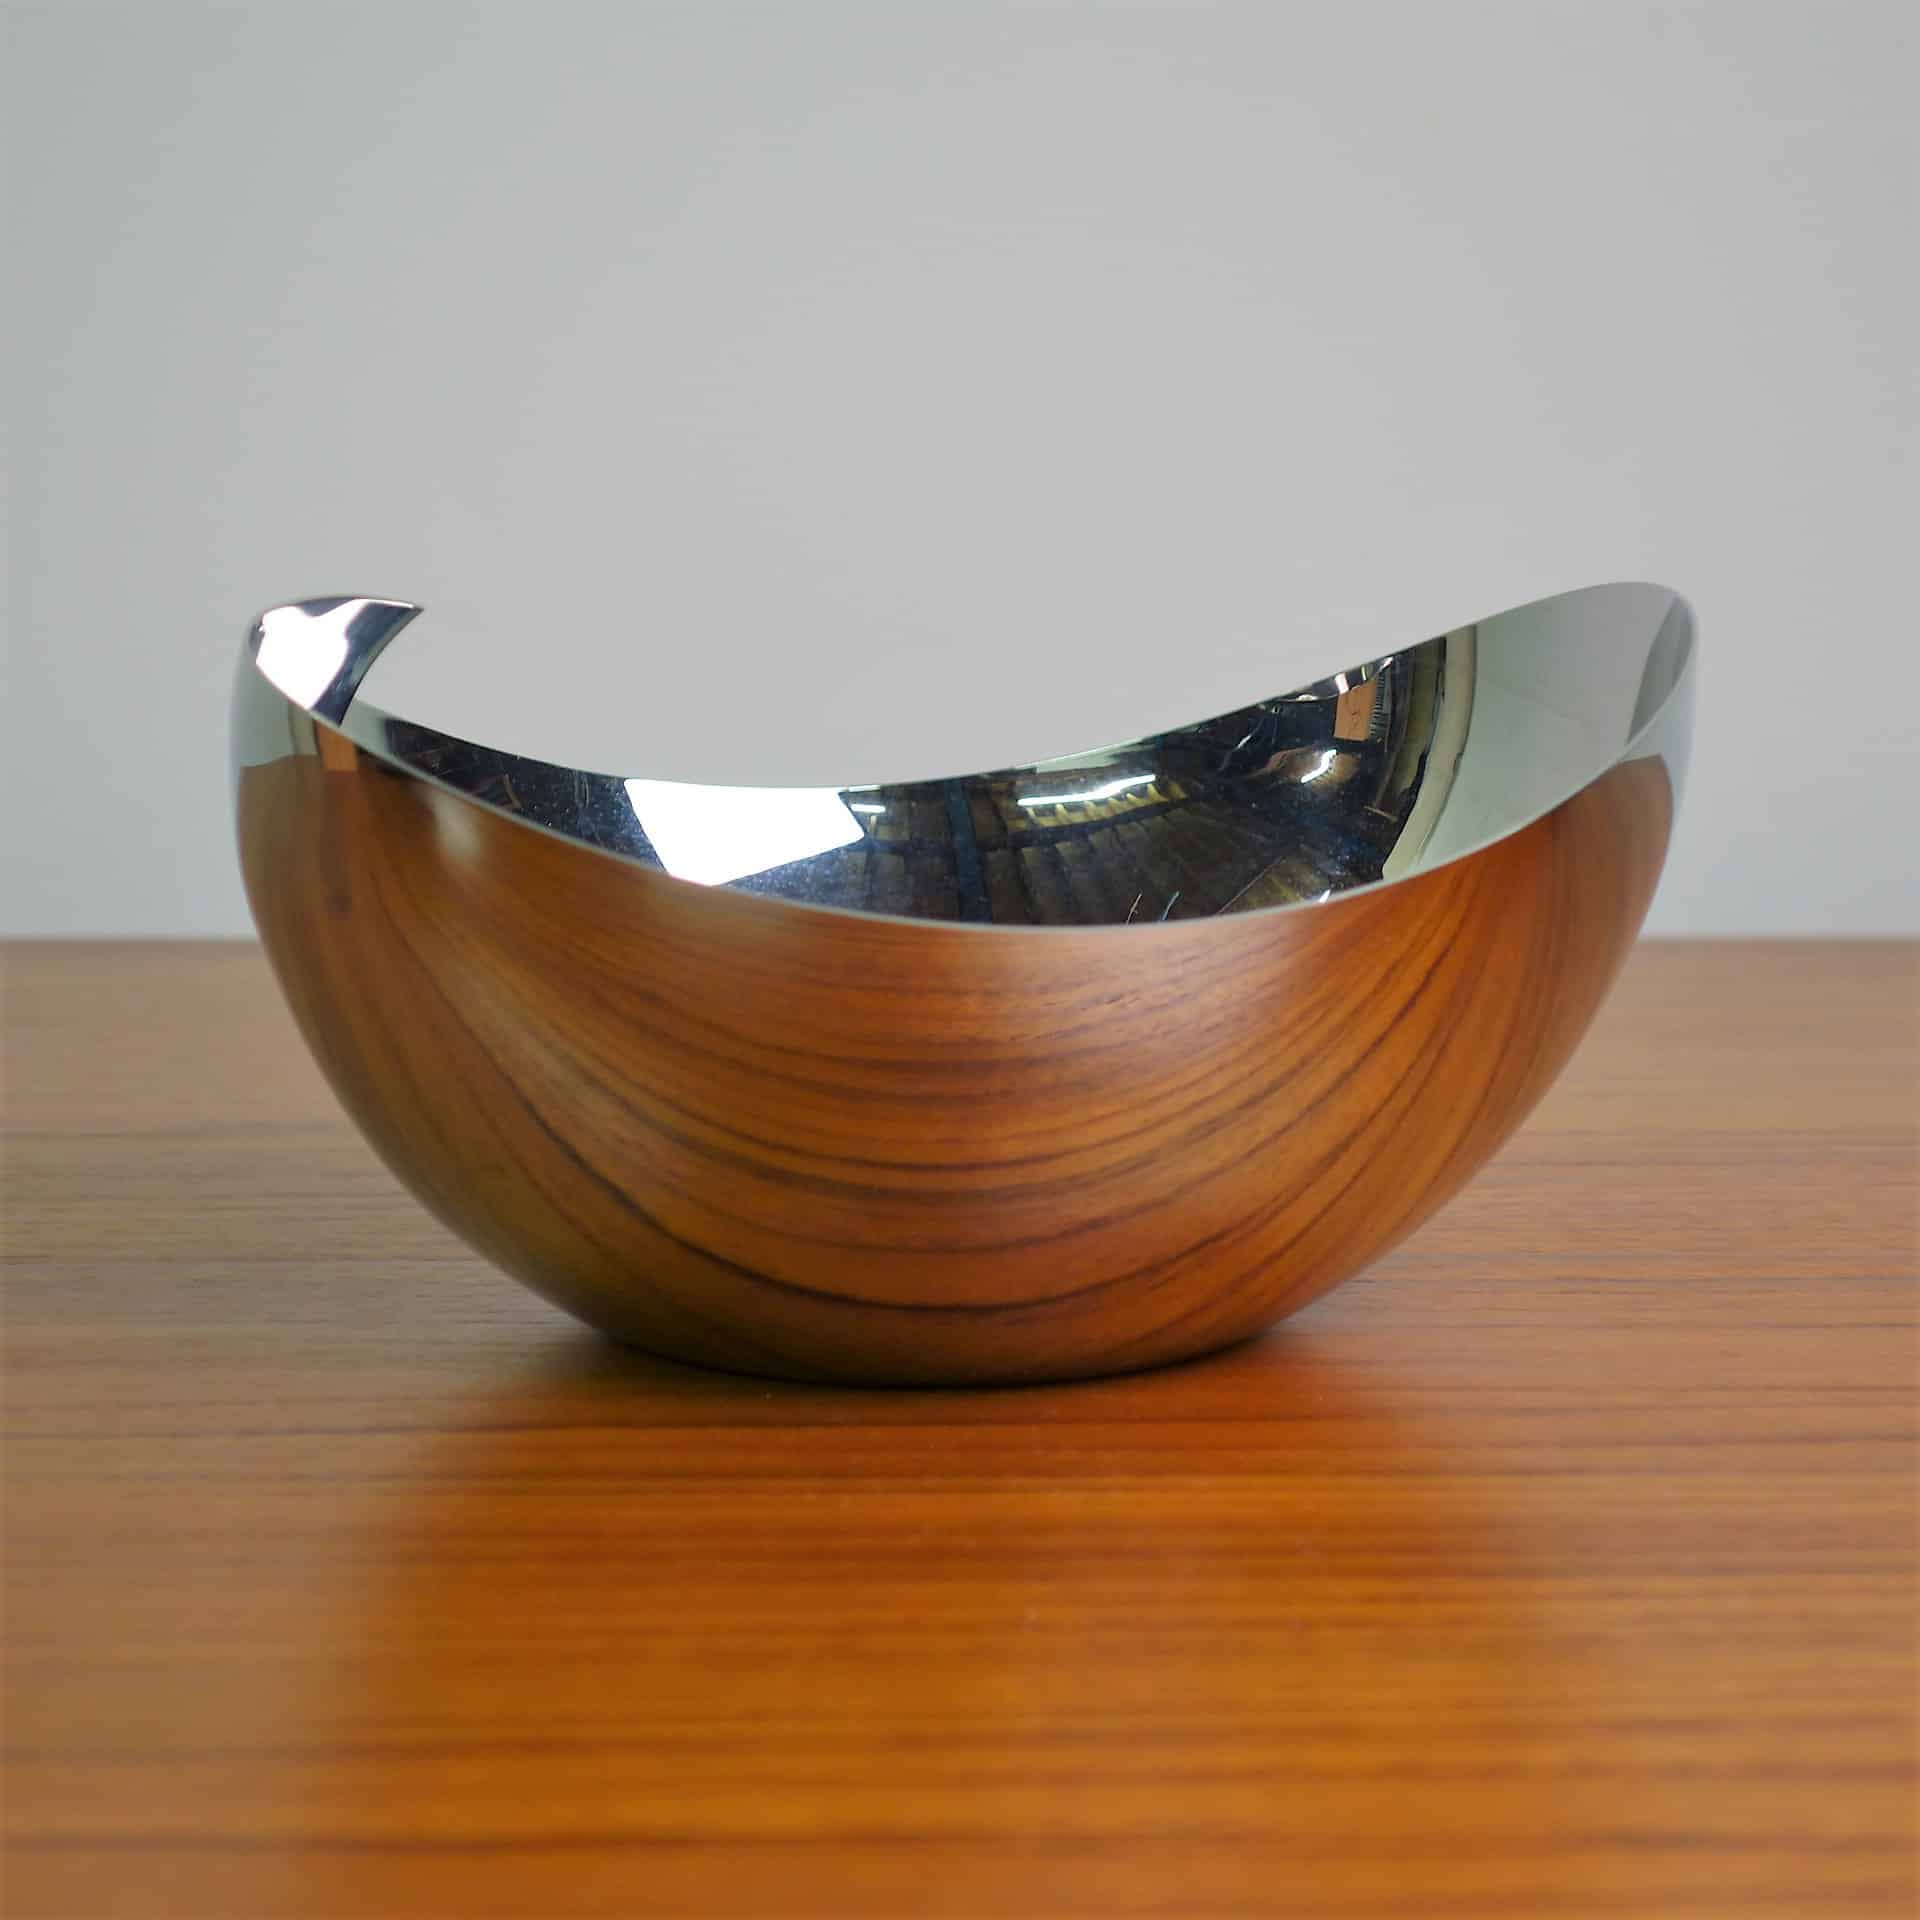 Metal Fruit Bowl Robert Welch Rushan Stainless Steel Fruit Bowl Mark